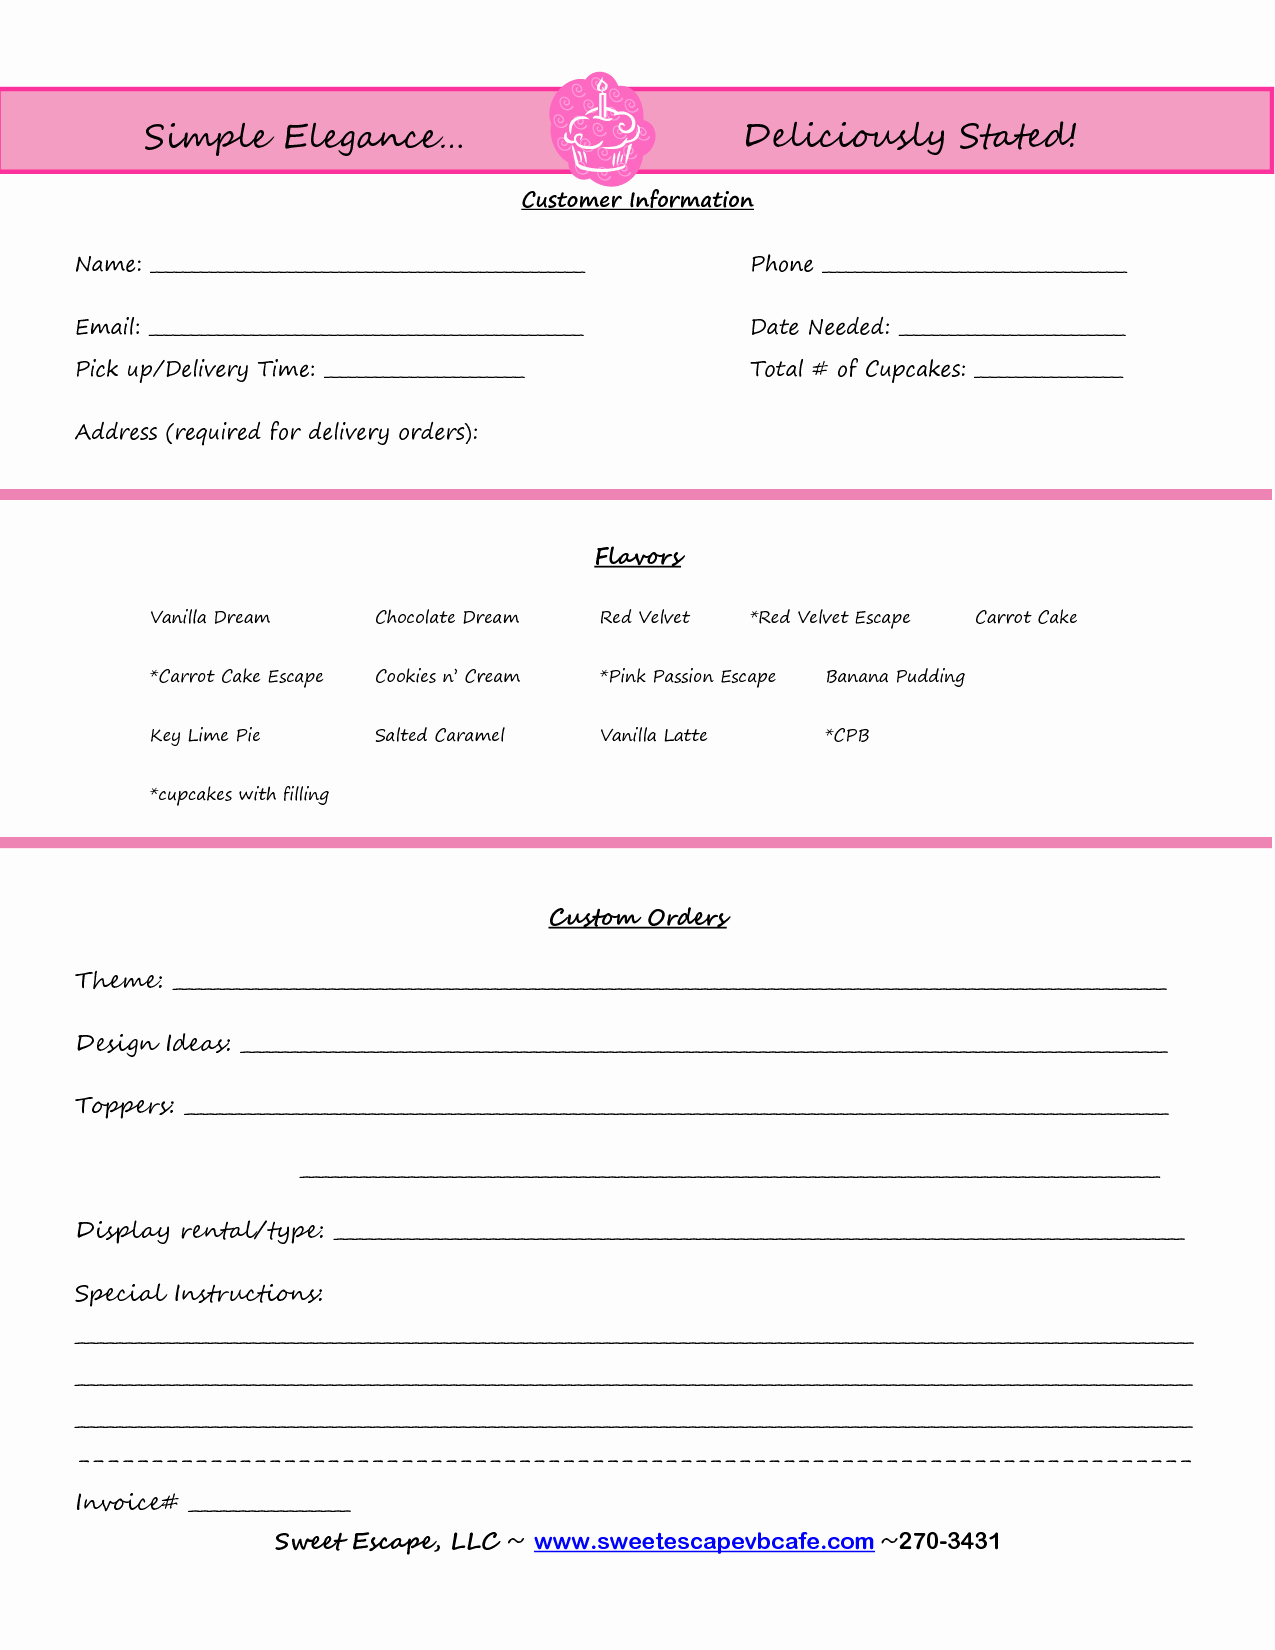 Cake order form Templates Best Of Cake order form Templates Free Cupcakes